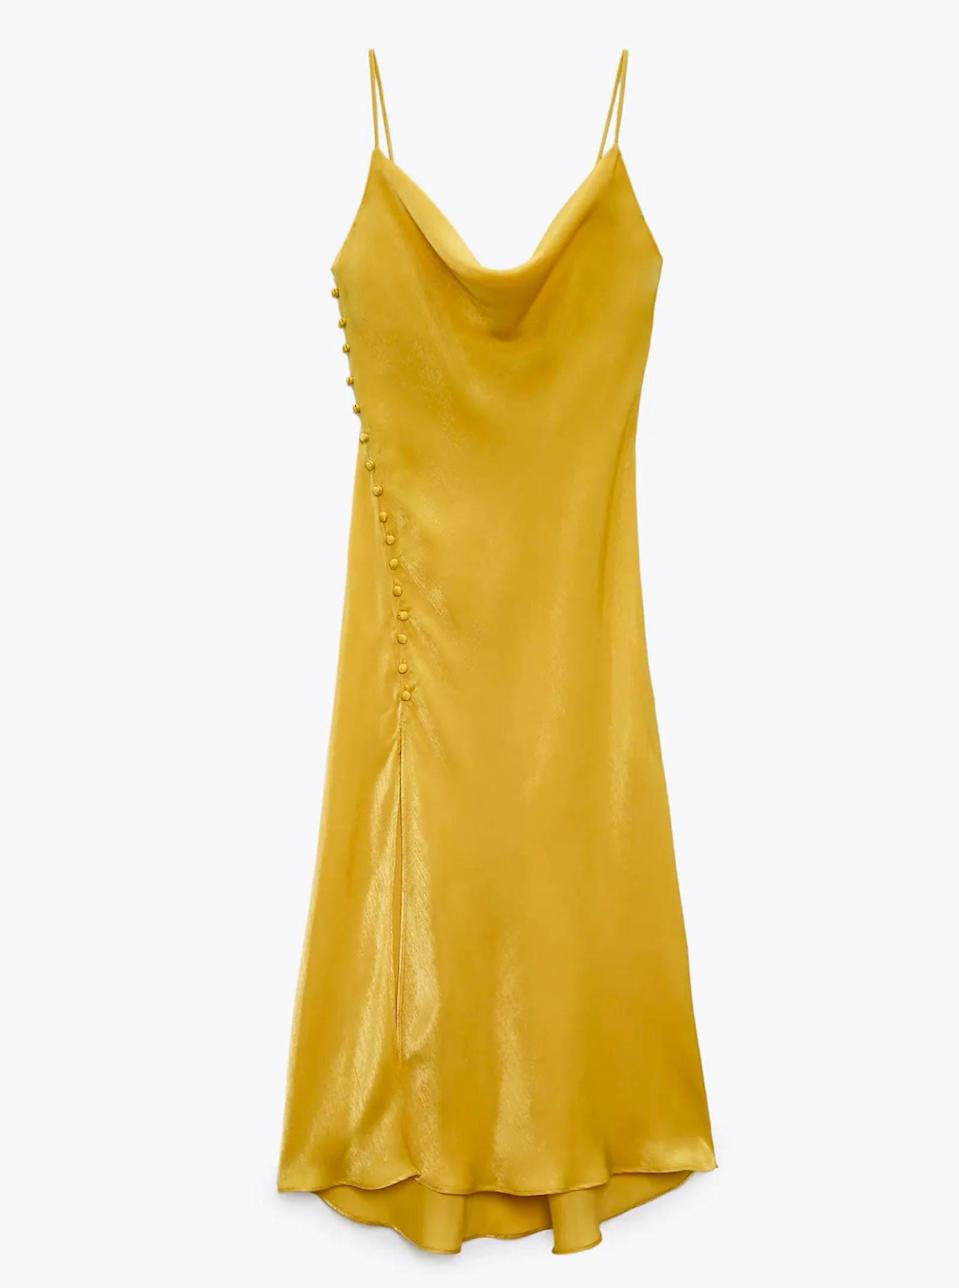 """Count on being the belle of the ball (after the bride, of course) in this satin slip dress with vintage-inspired buttons. $40, Zara. <a href=""""https://www.zara.com/us/en/satin-lingerie-style-dress-p02085762.html?"""" rel=""""nofollow noopener"""" target=""""_blank"""" data-ylk=""""slk:Get it now!"""" class=""""link rapid-noclick-resp"""">Get it now!</a>"""